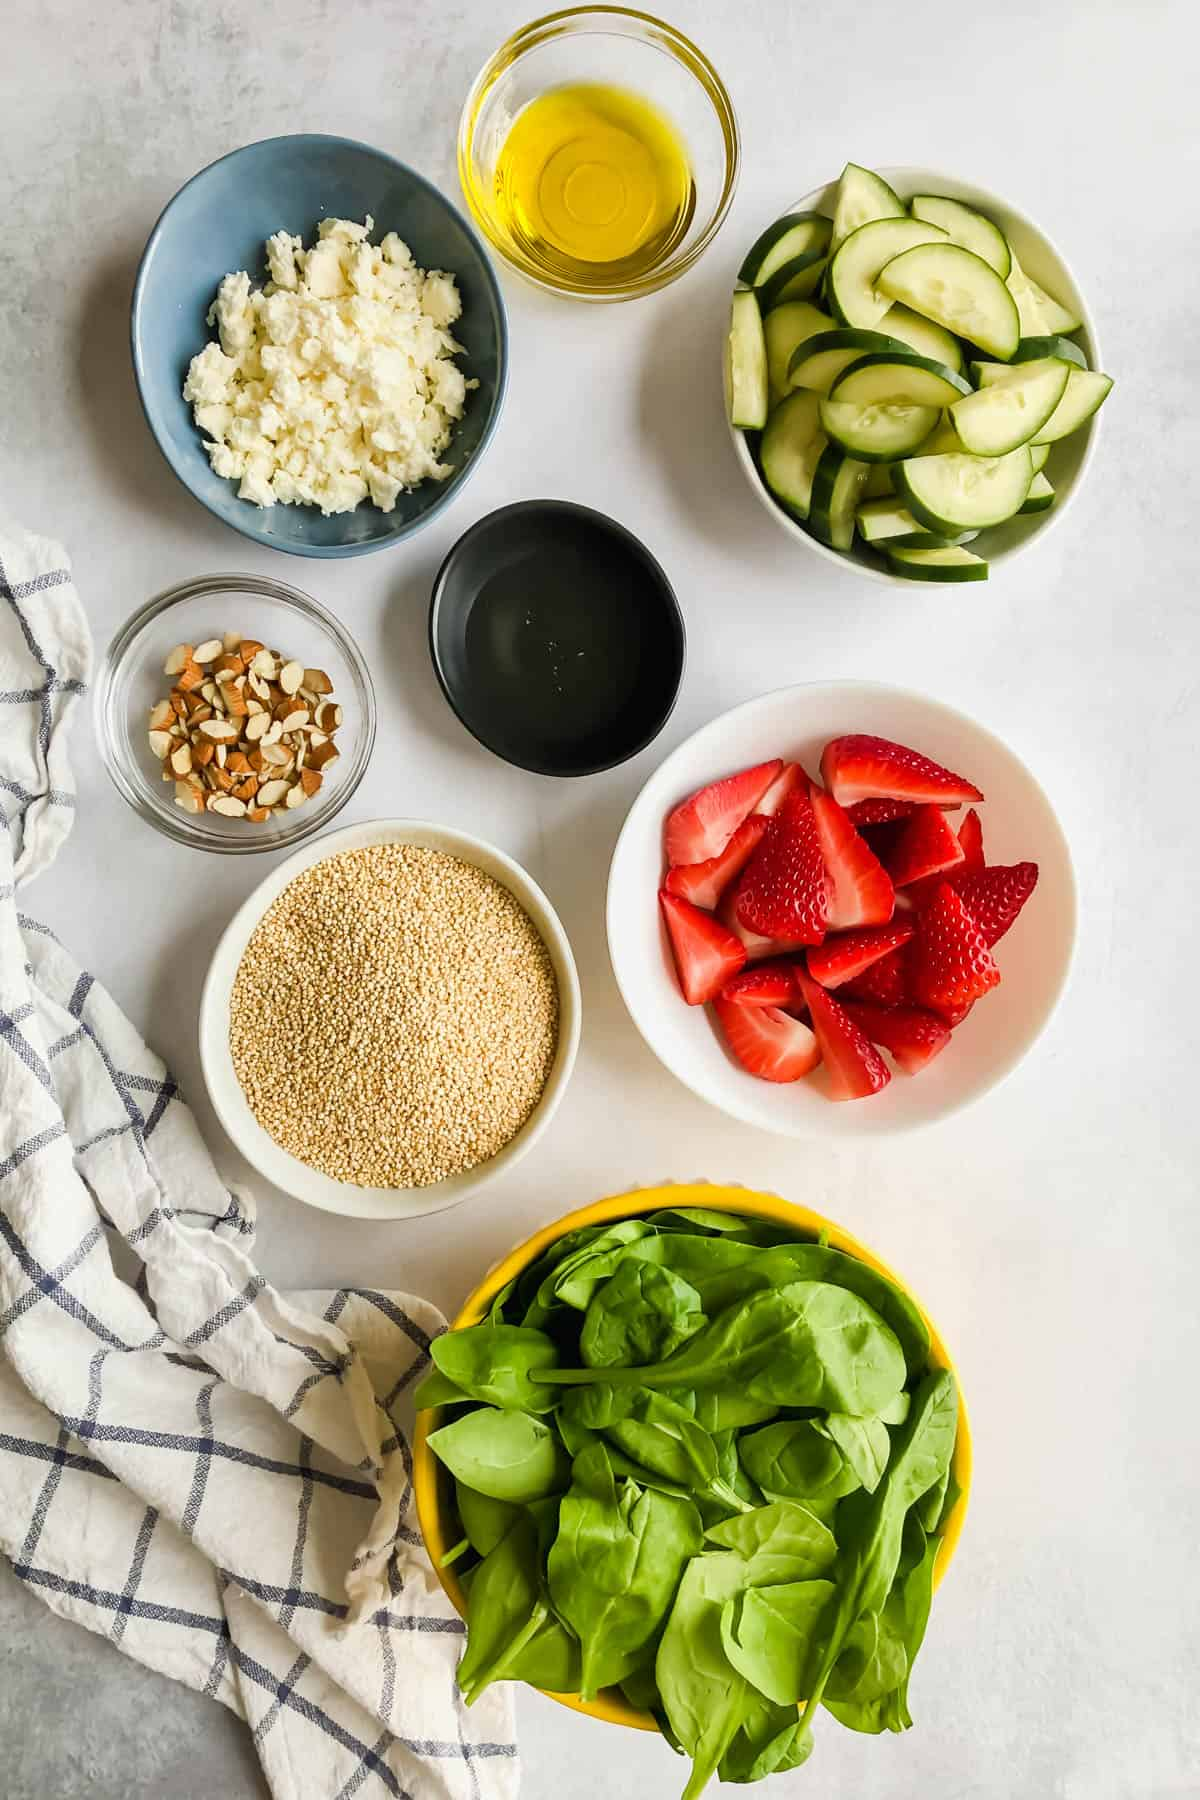 ingredients for Cucumber Strawberry Salad in bowls